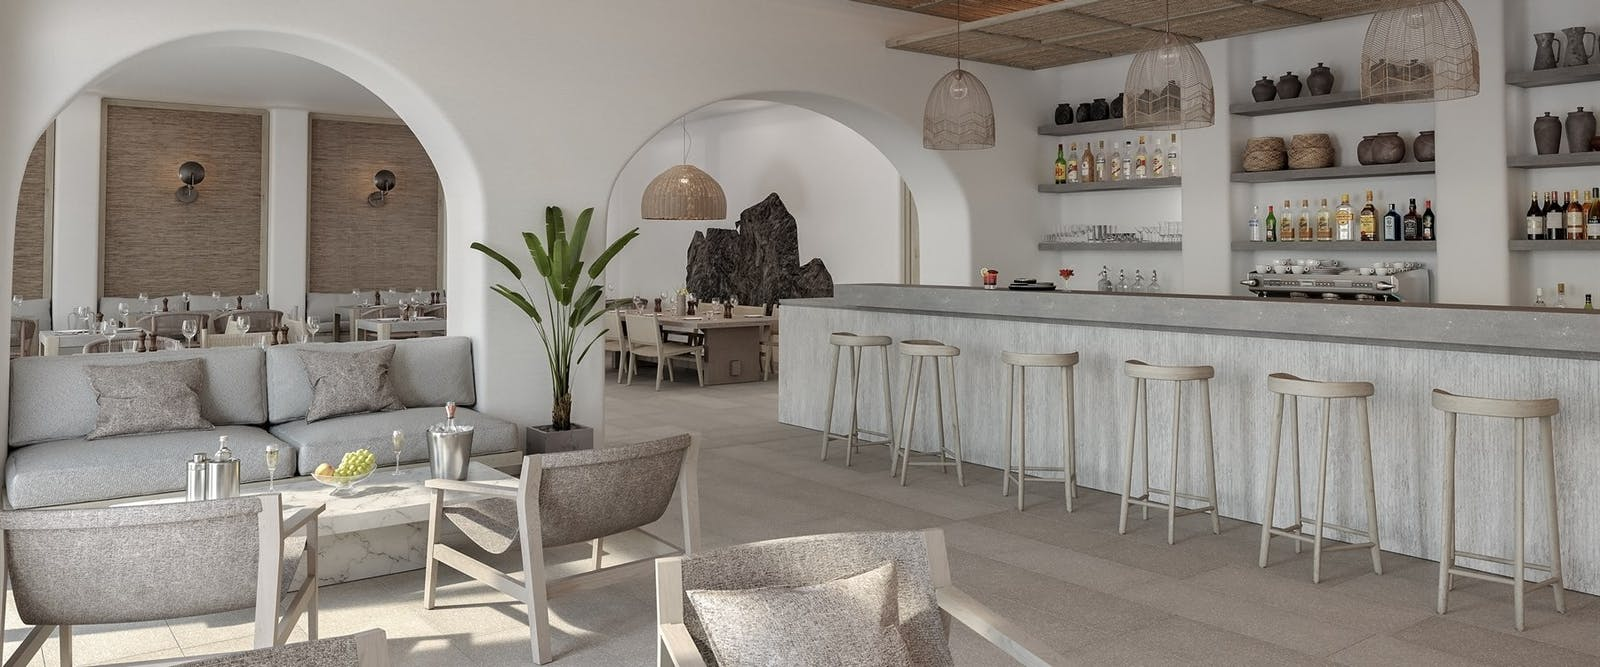 The Bar at Canaves Oia Epitome, Santorini, Greece